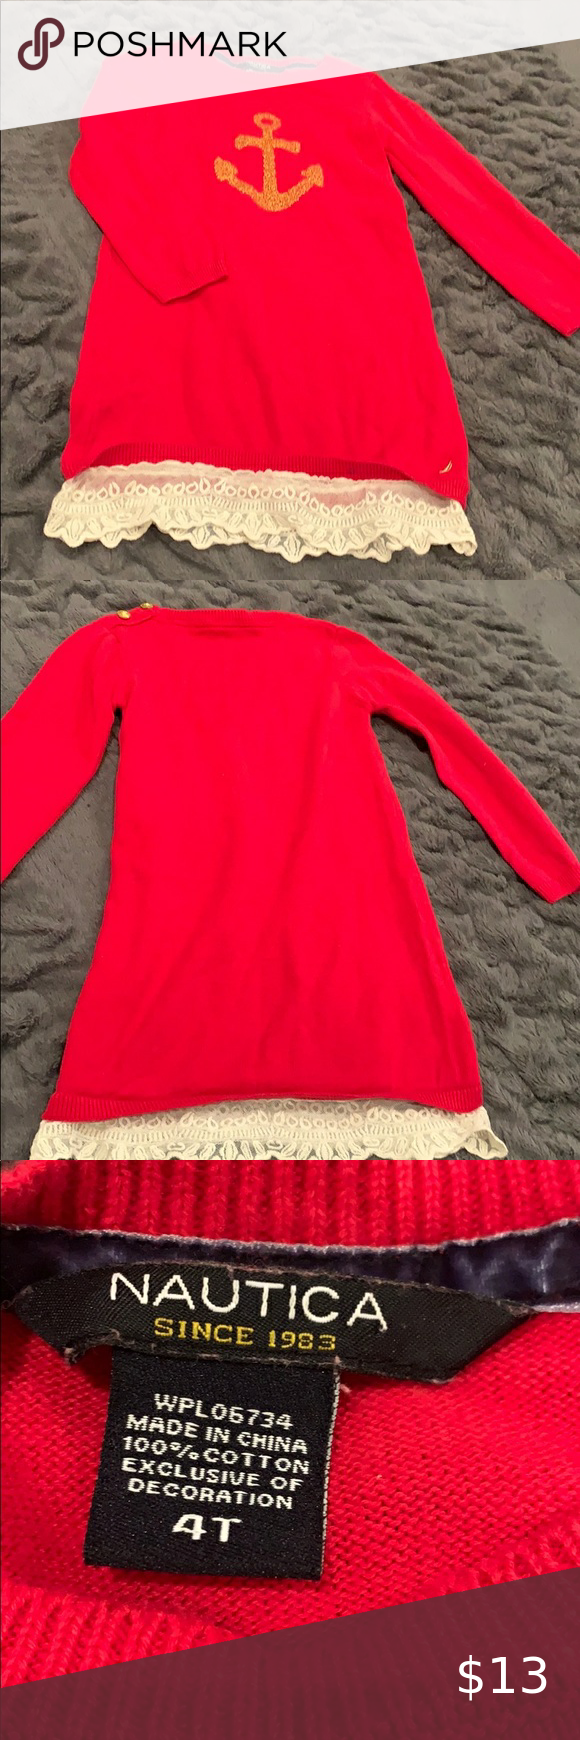 Nautica Girls Red Sweater Dress With Gold Details Nautica Girls Sweater Dress Color Red With Cream Lace T Red Sweater Dress Girls Sweater Dress Red Sweaters [ 1740 x 580 Pixel ]